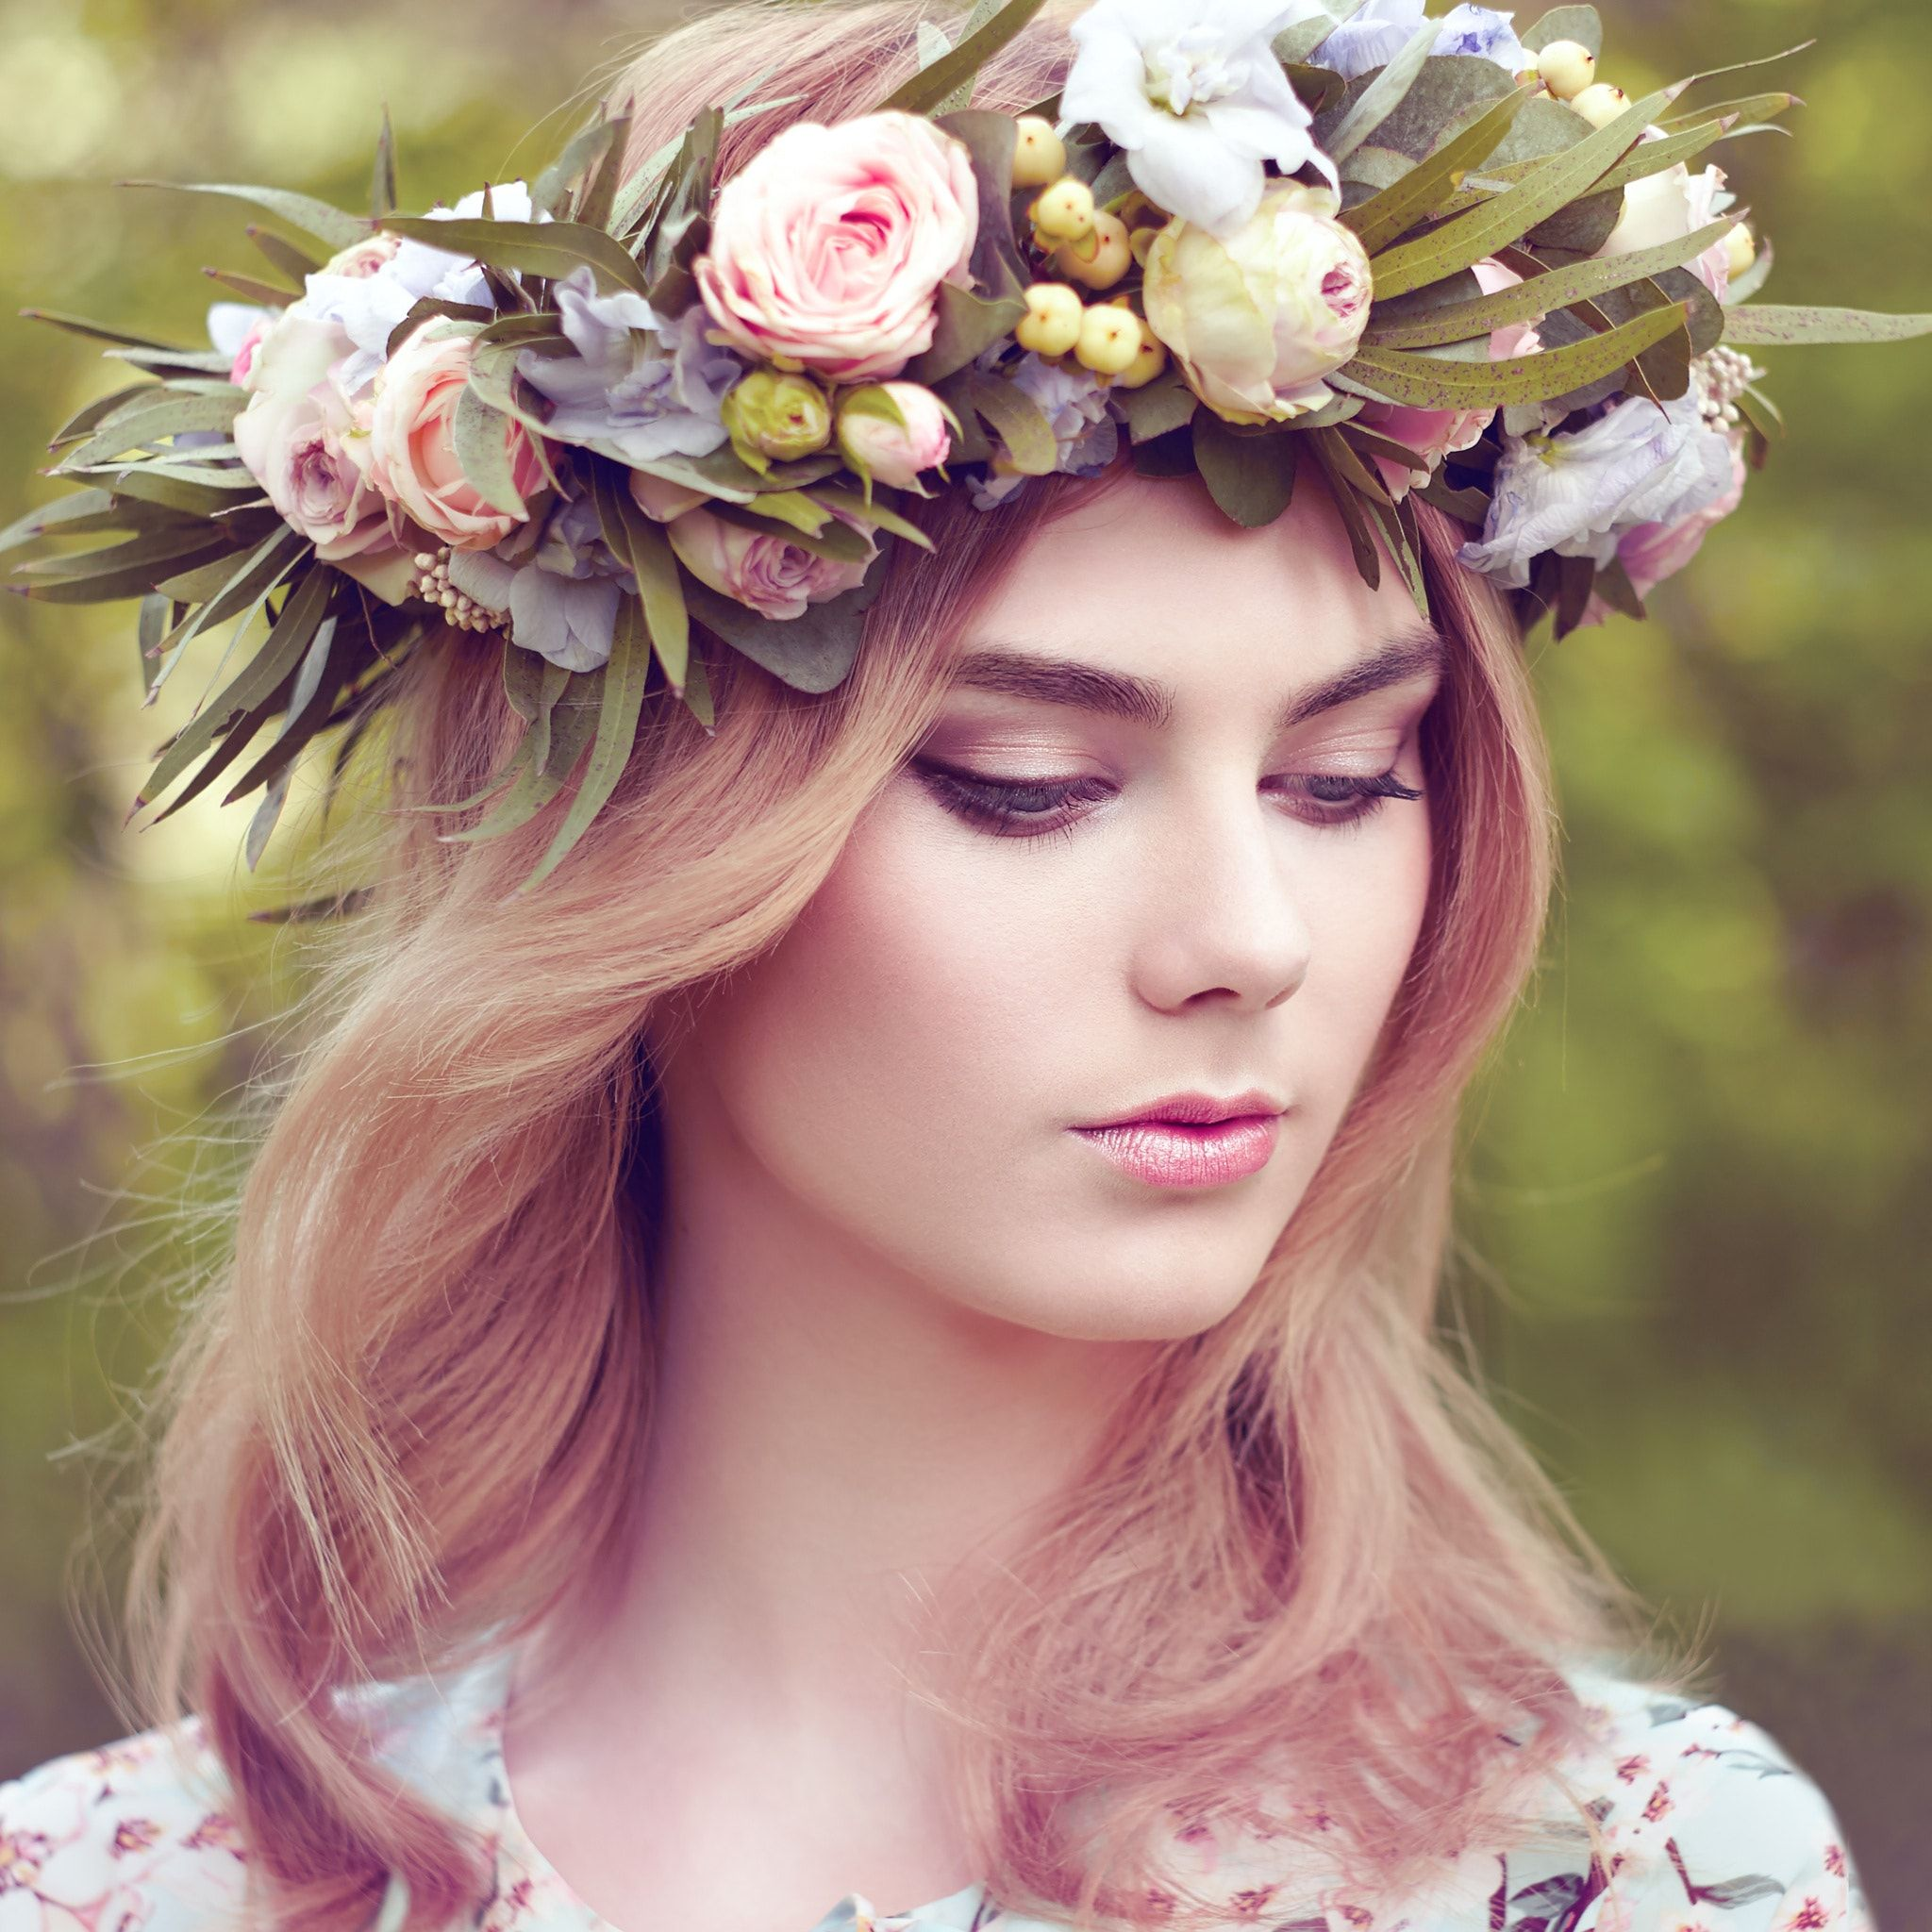 Beautiful blonde woman with flower wreath on her head beautiful beautiful blonde woman with flower wreath on her head beautiful blonde woman with flower wreath dhlflorist Gallery